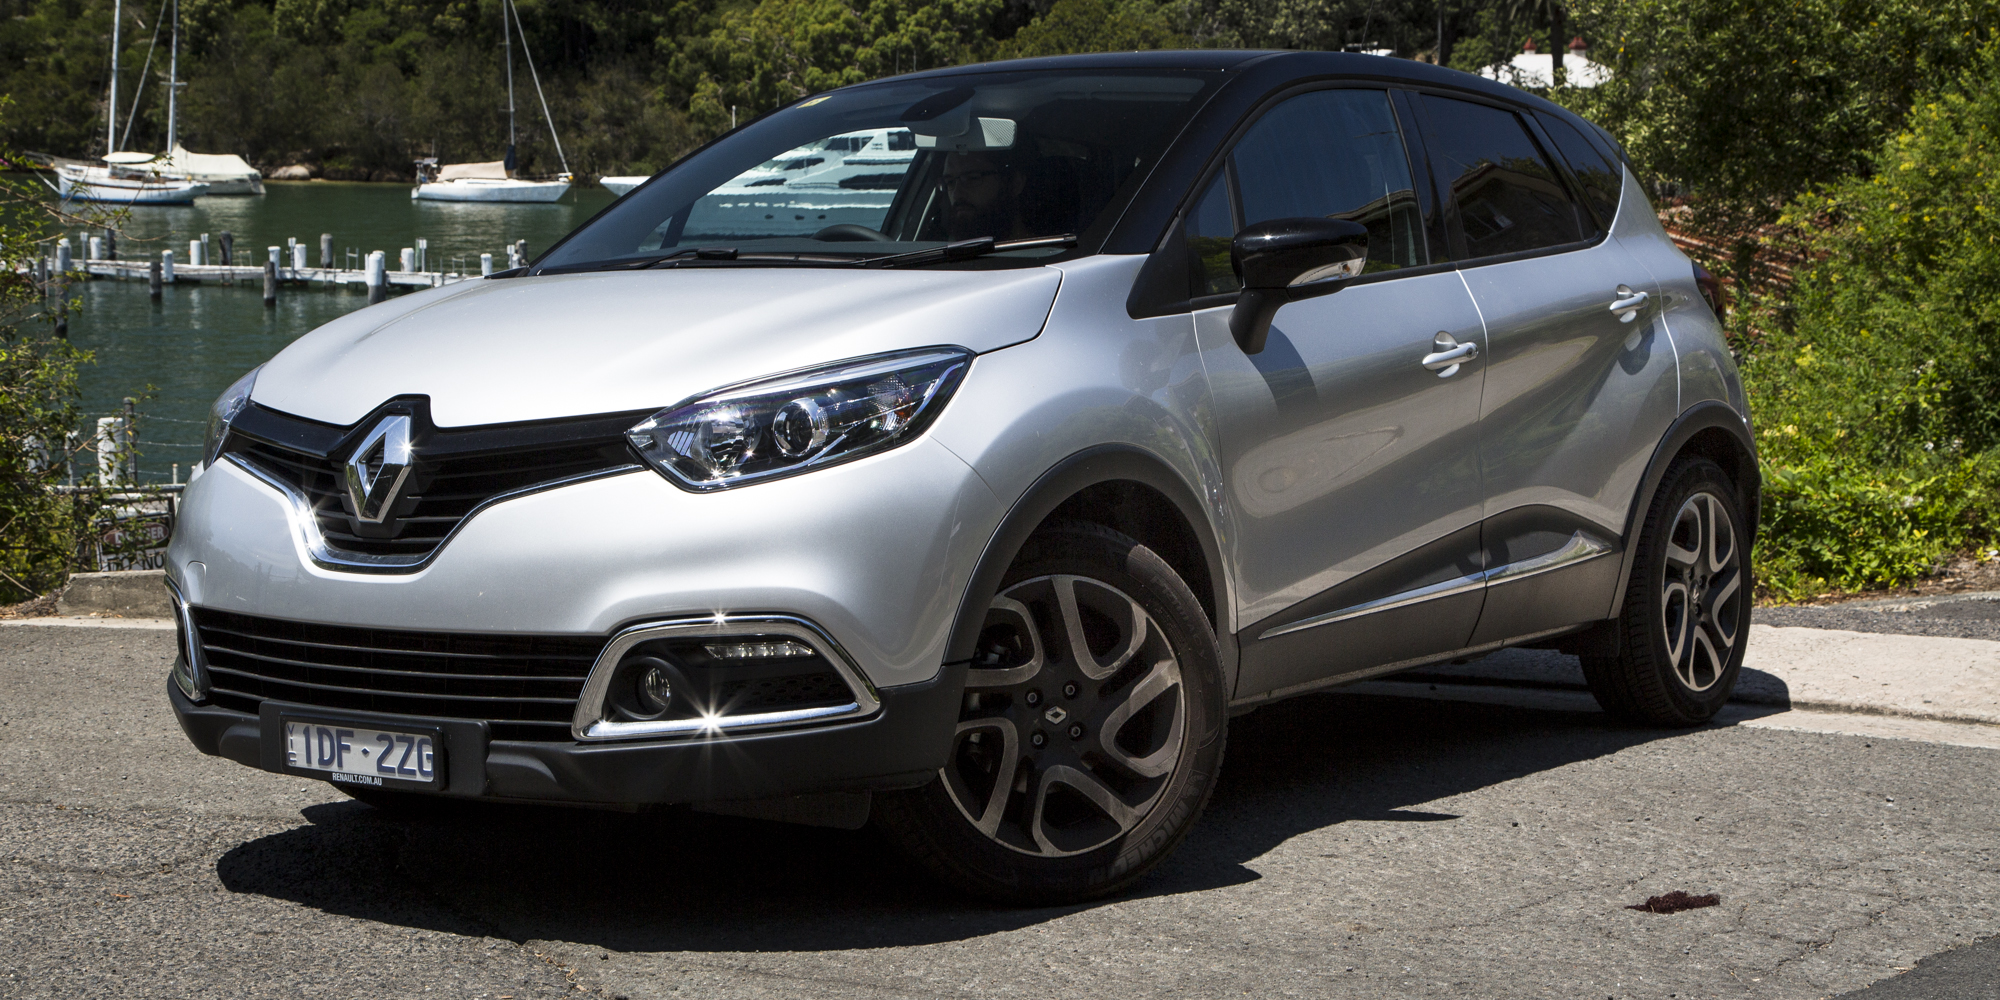 renault captur review long term report three caradvice. Black Bedroom Furniture Sets. Home Design Ideas